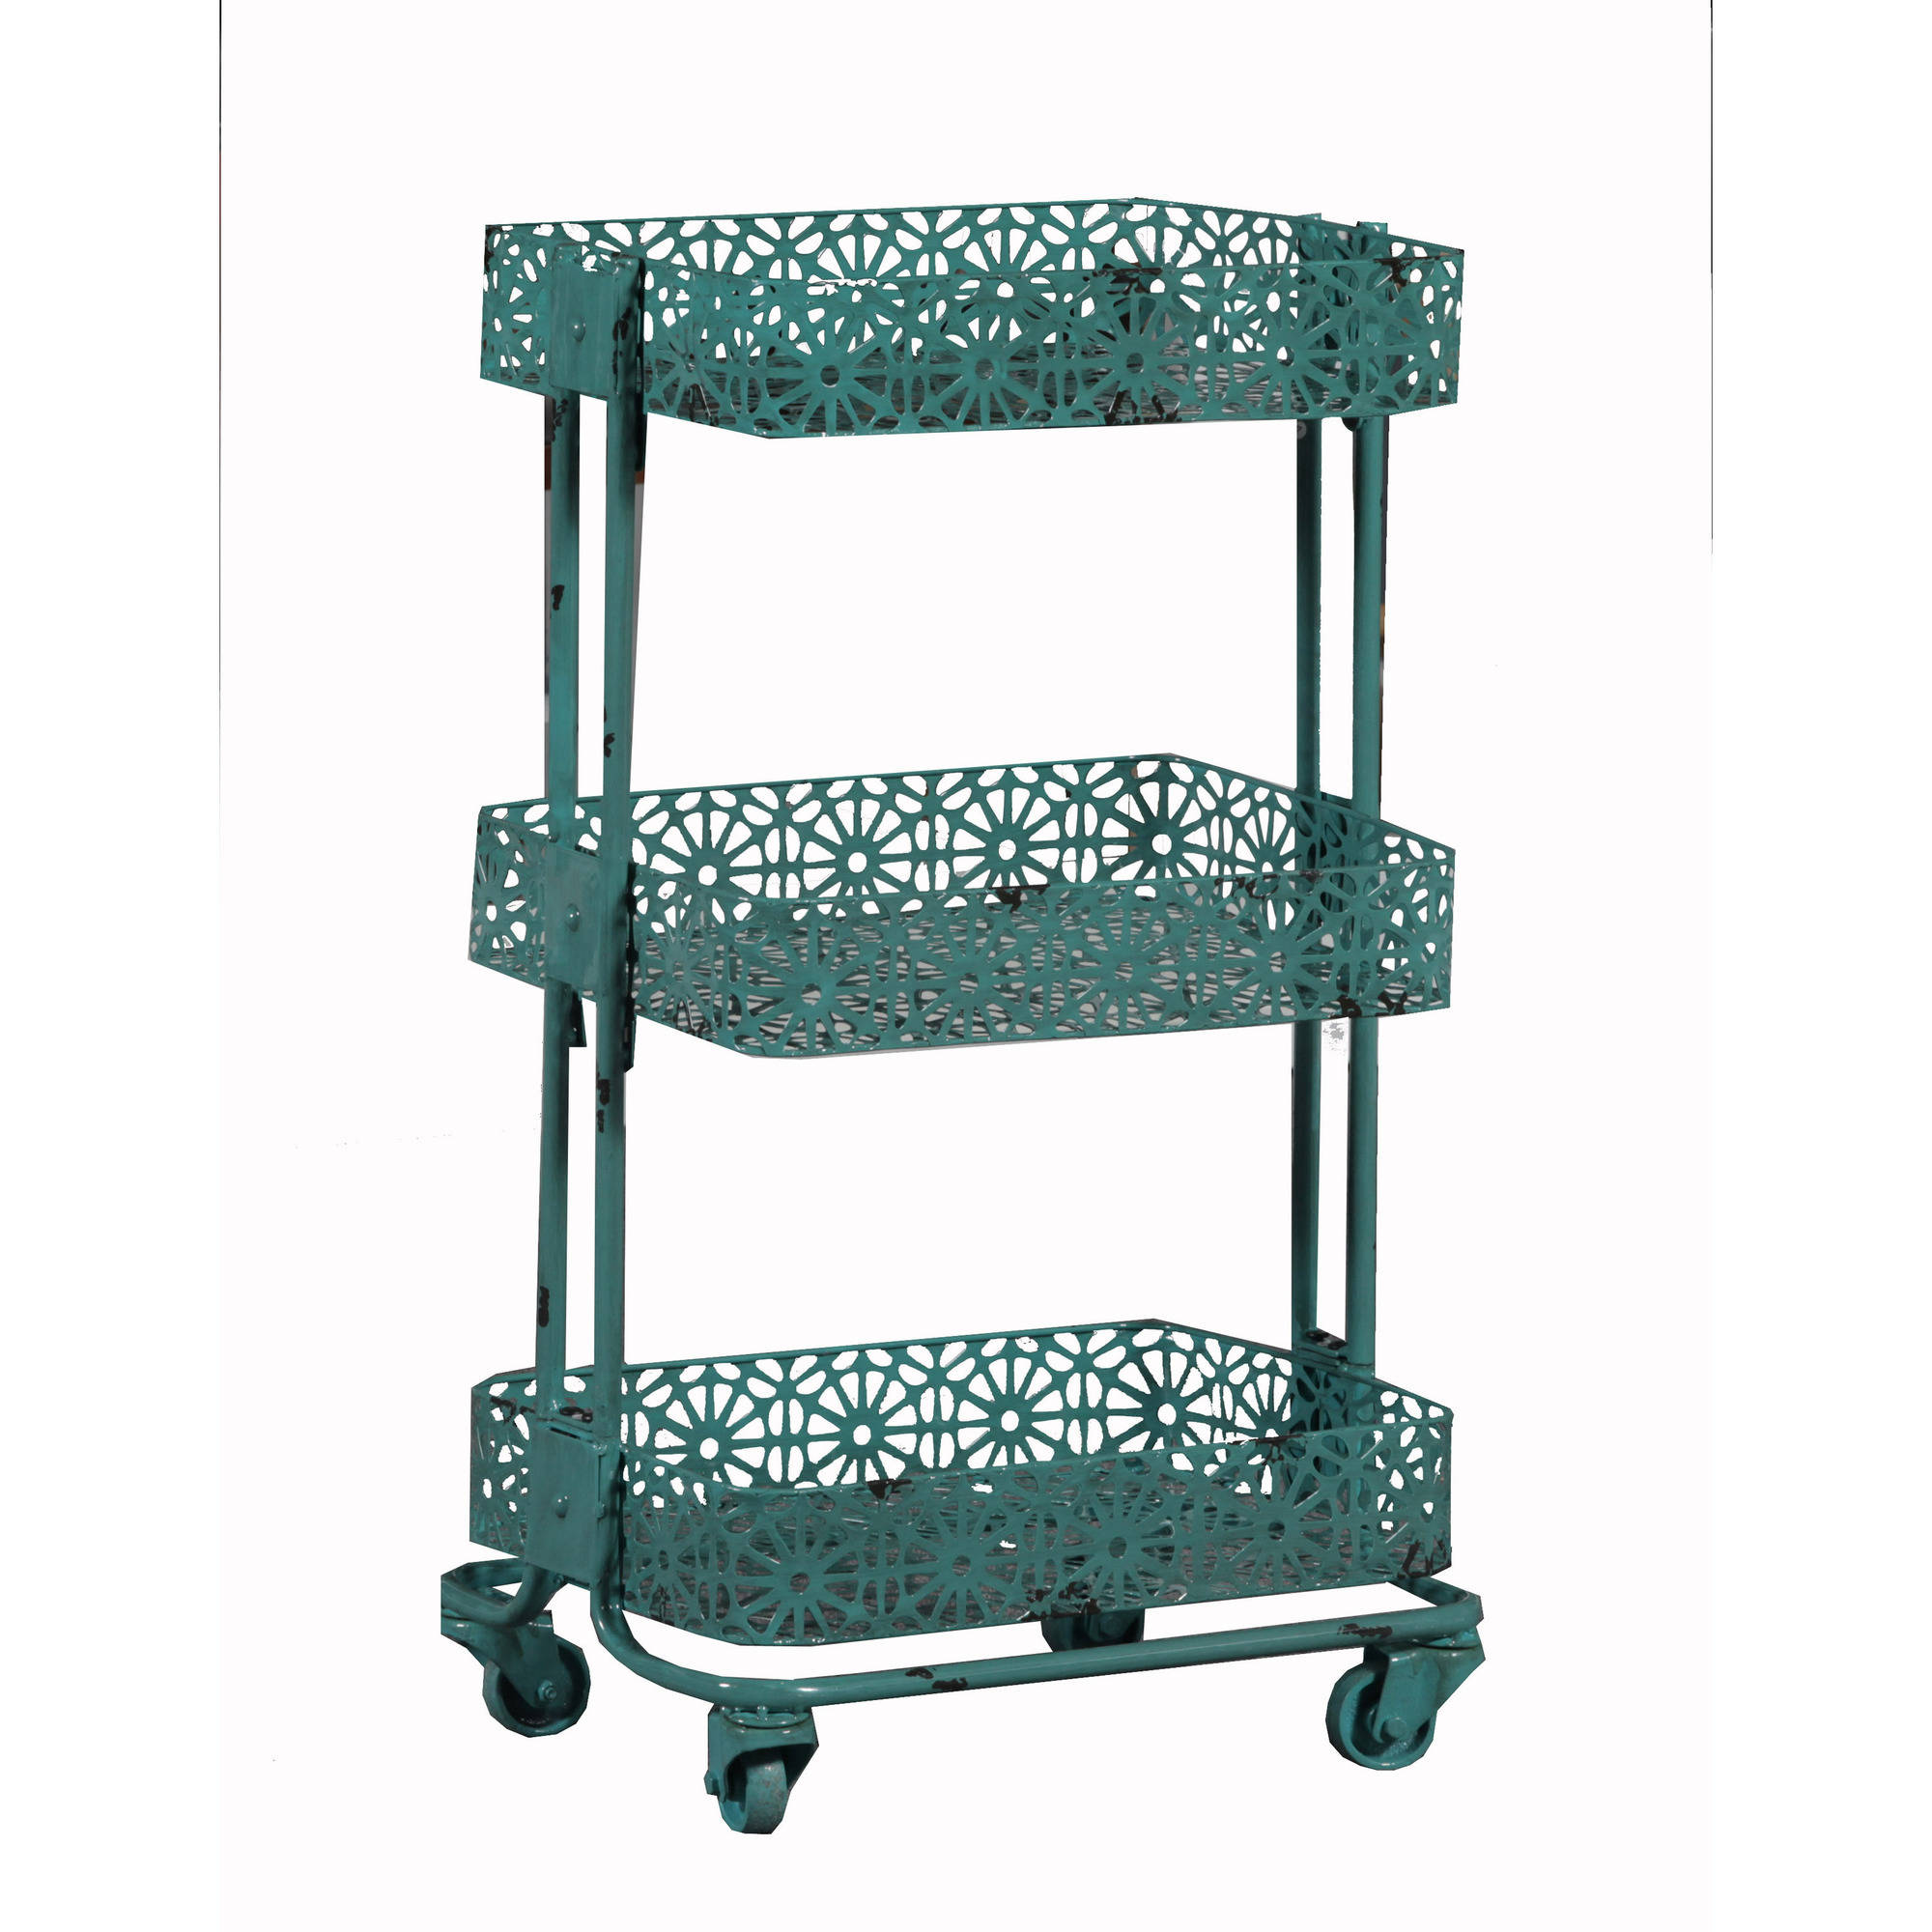 Linon Metal Three Tier Cart, Turquoise, 29 Inches Tall   Walmart.com